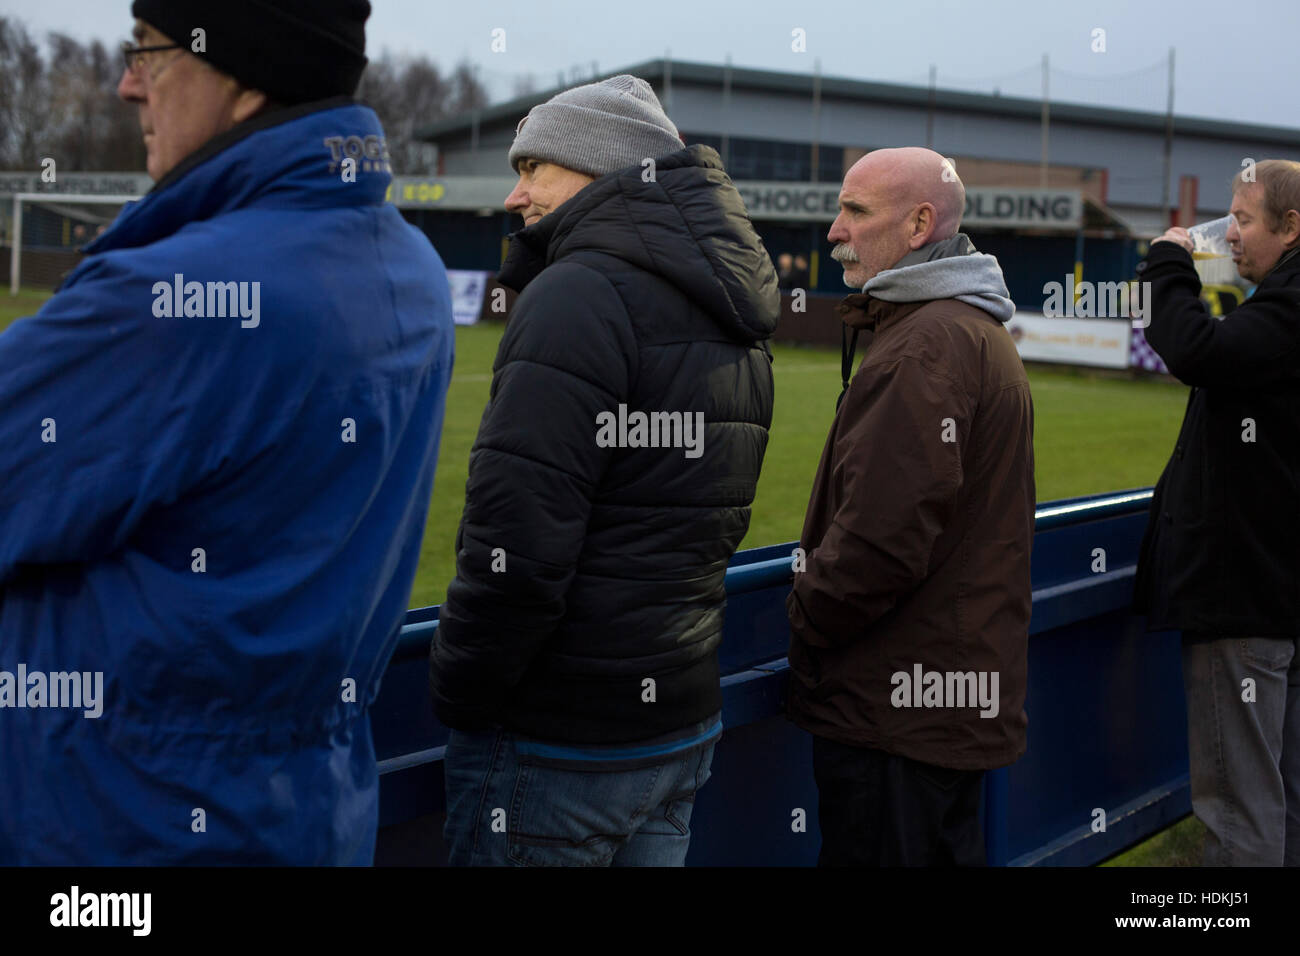 Home supporters watching the first-half action at the Delta Taxis Stadium, Bootle, Merseyside as City of Liverpool - Stock Image